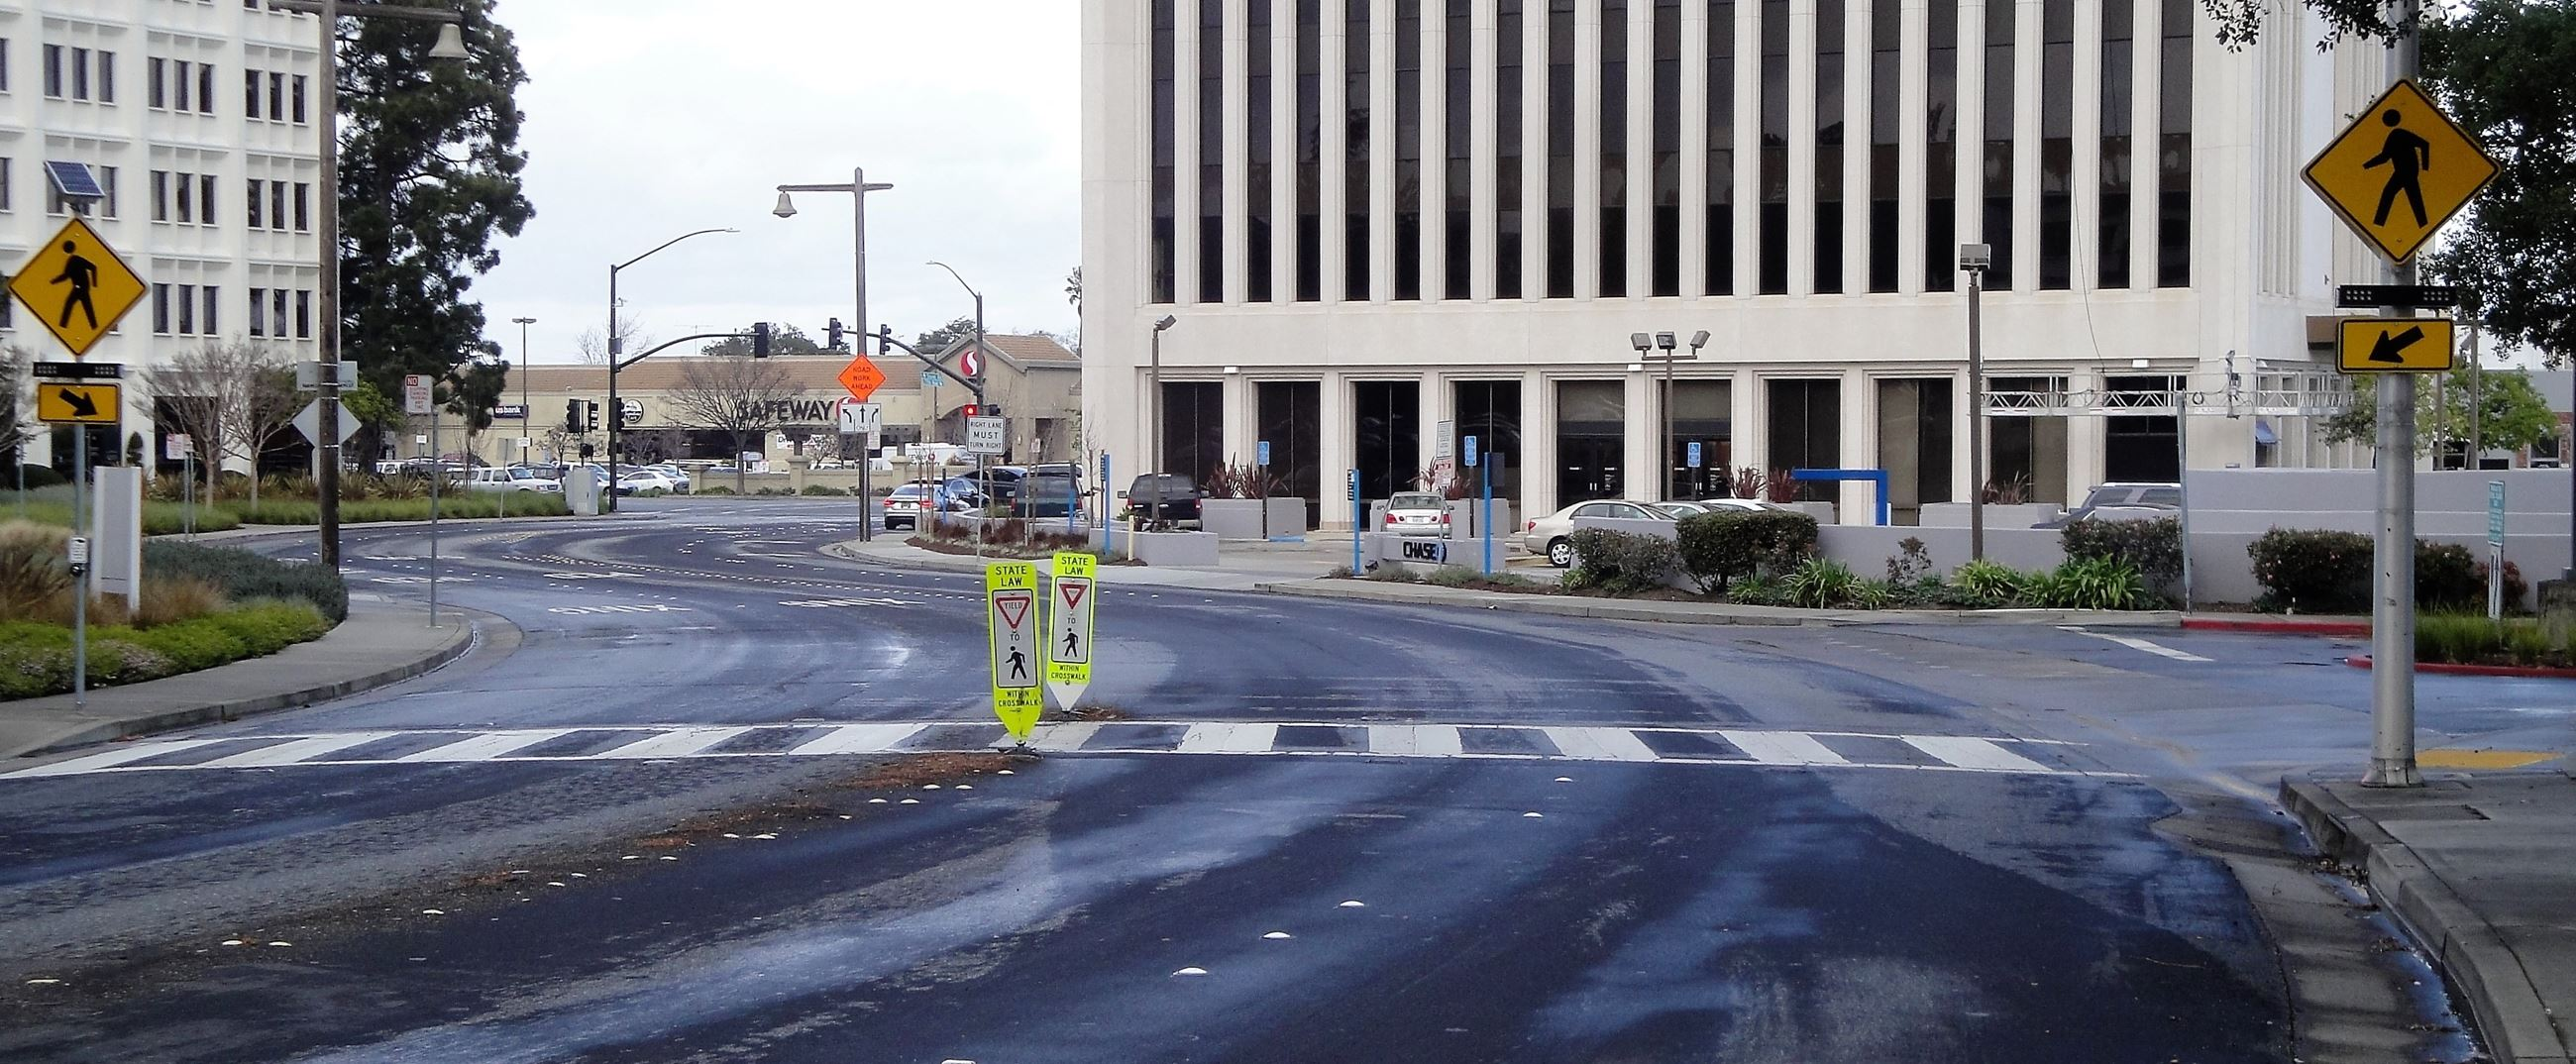 Bovet Pedestrian Crossing Upgrade